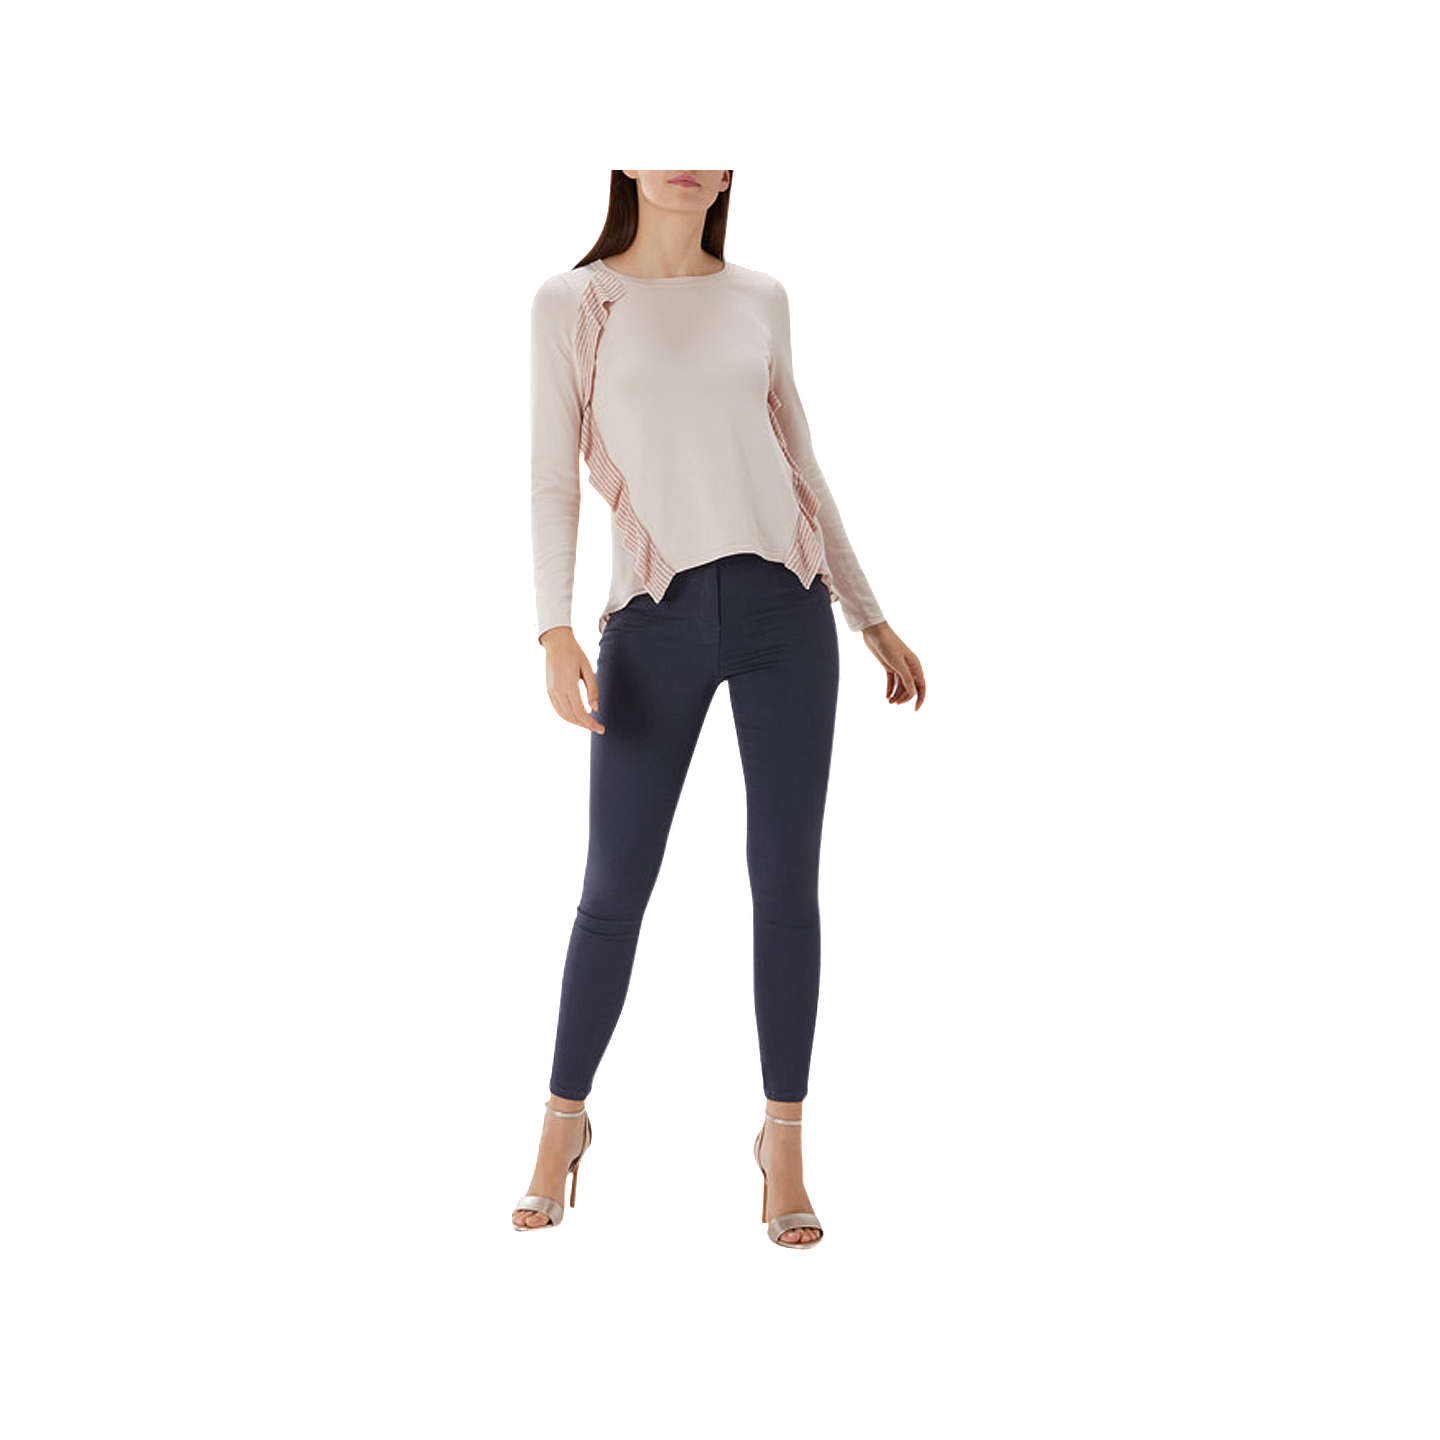 BuyCoast Liana Frill Jumper, Blush, XS Online at johnlewis.com